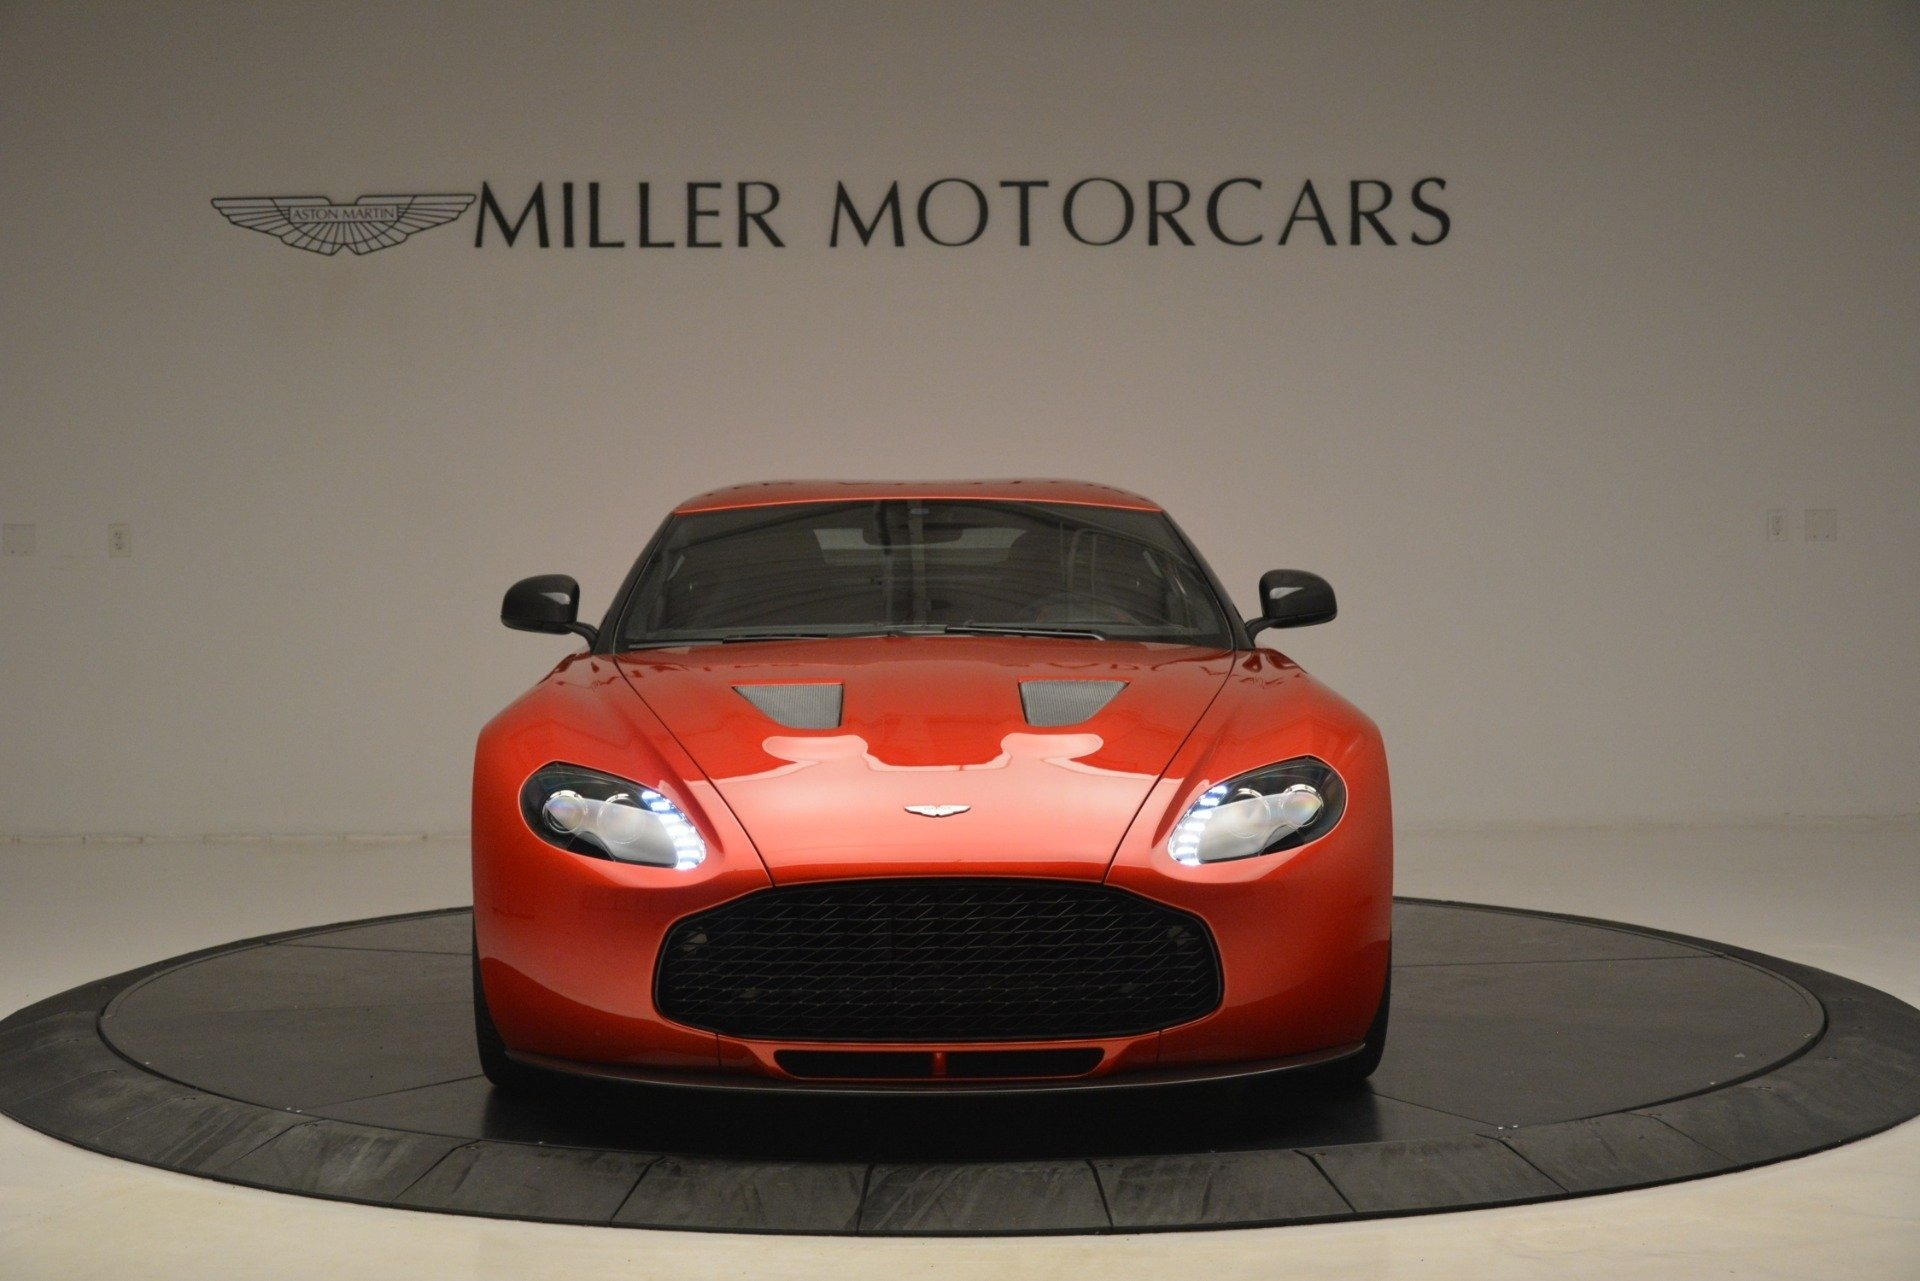 Used 2013 Aston Martin V12 Zagato Coupe For Sale In Greenwich, CT 3181_p8